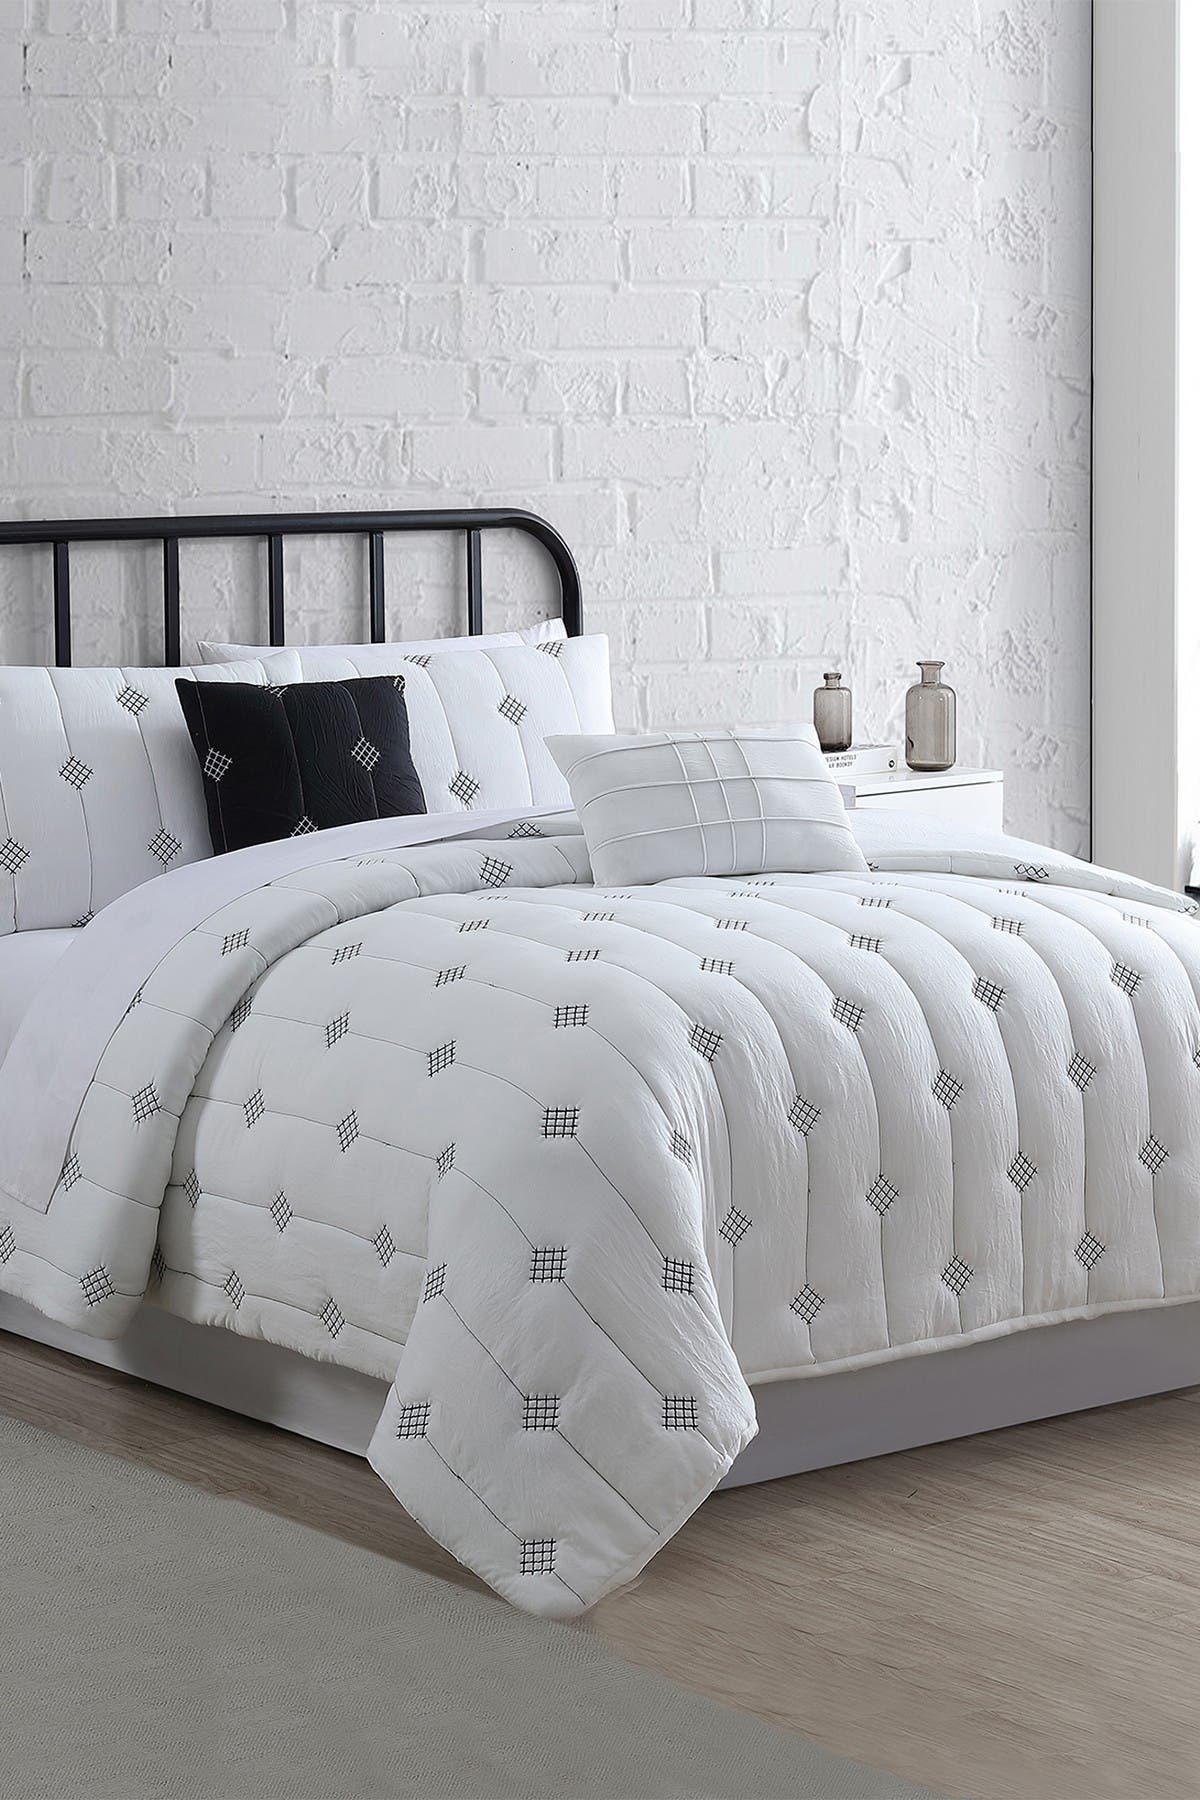 Image of Modern Threads 5-Piece Embroidered Garment-Washed Comforter Set - Eldon Ivory - Queen